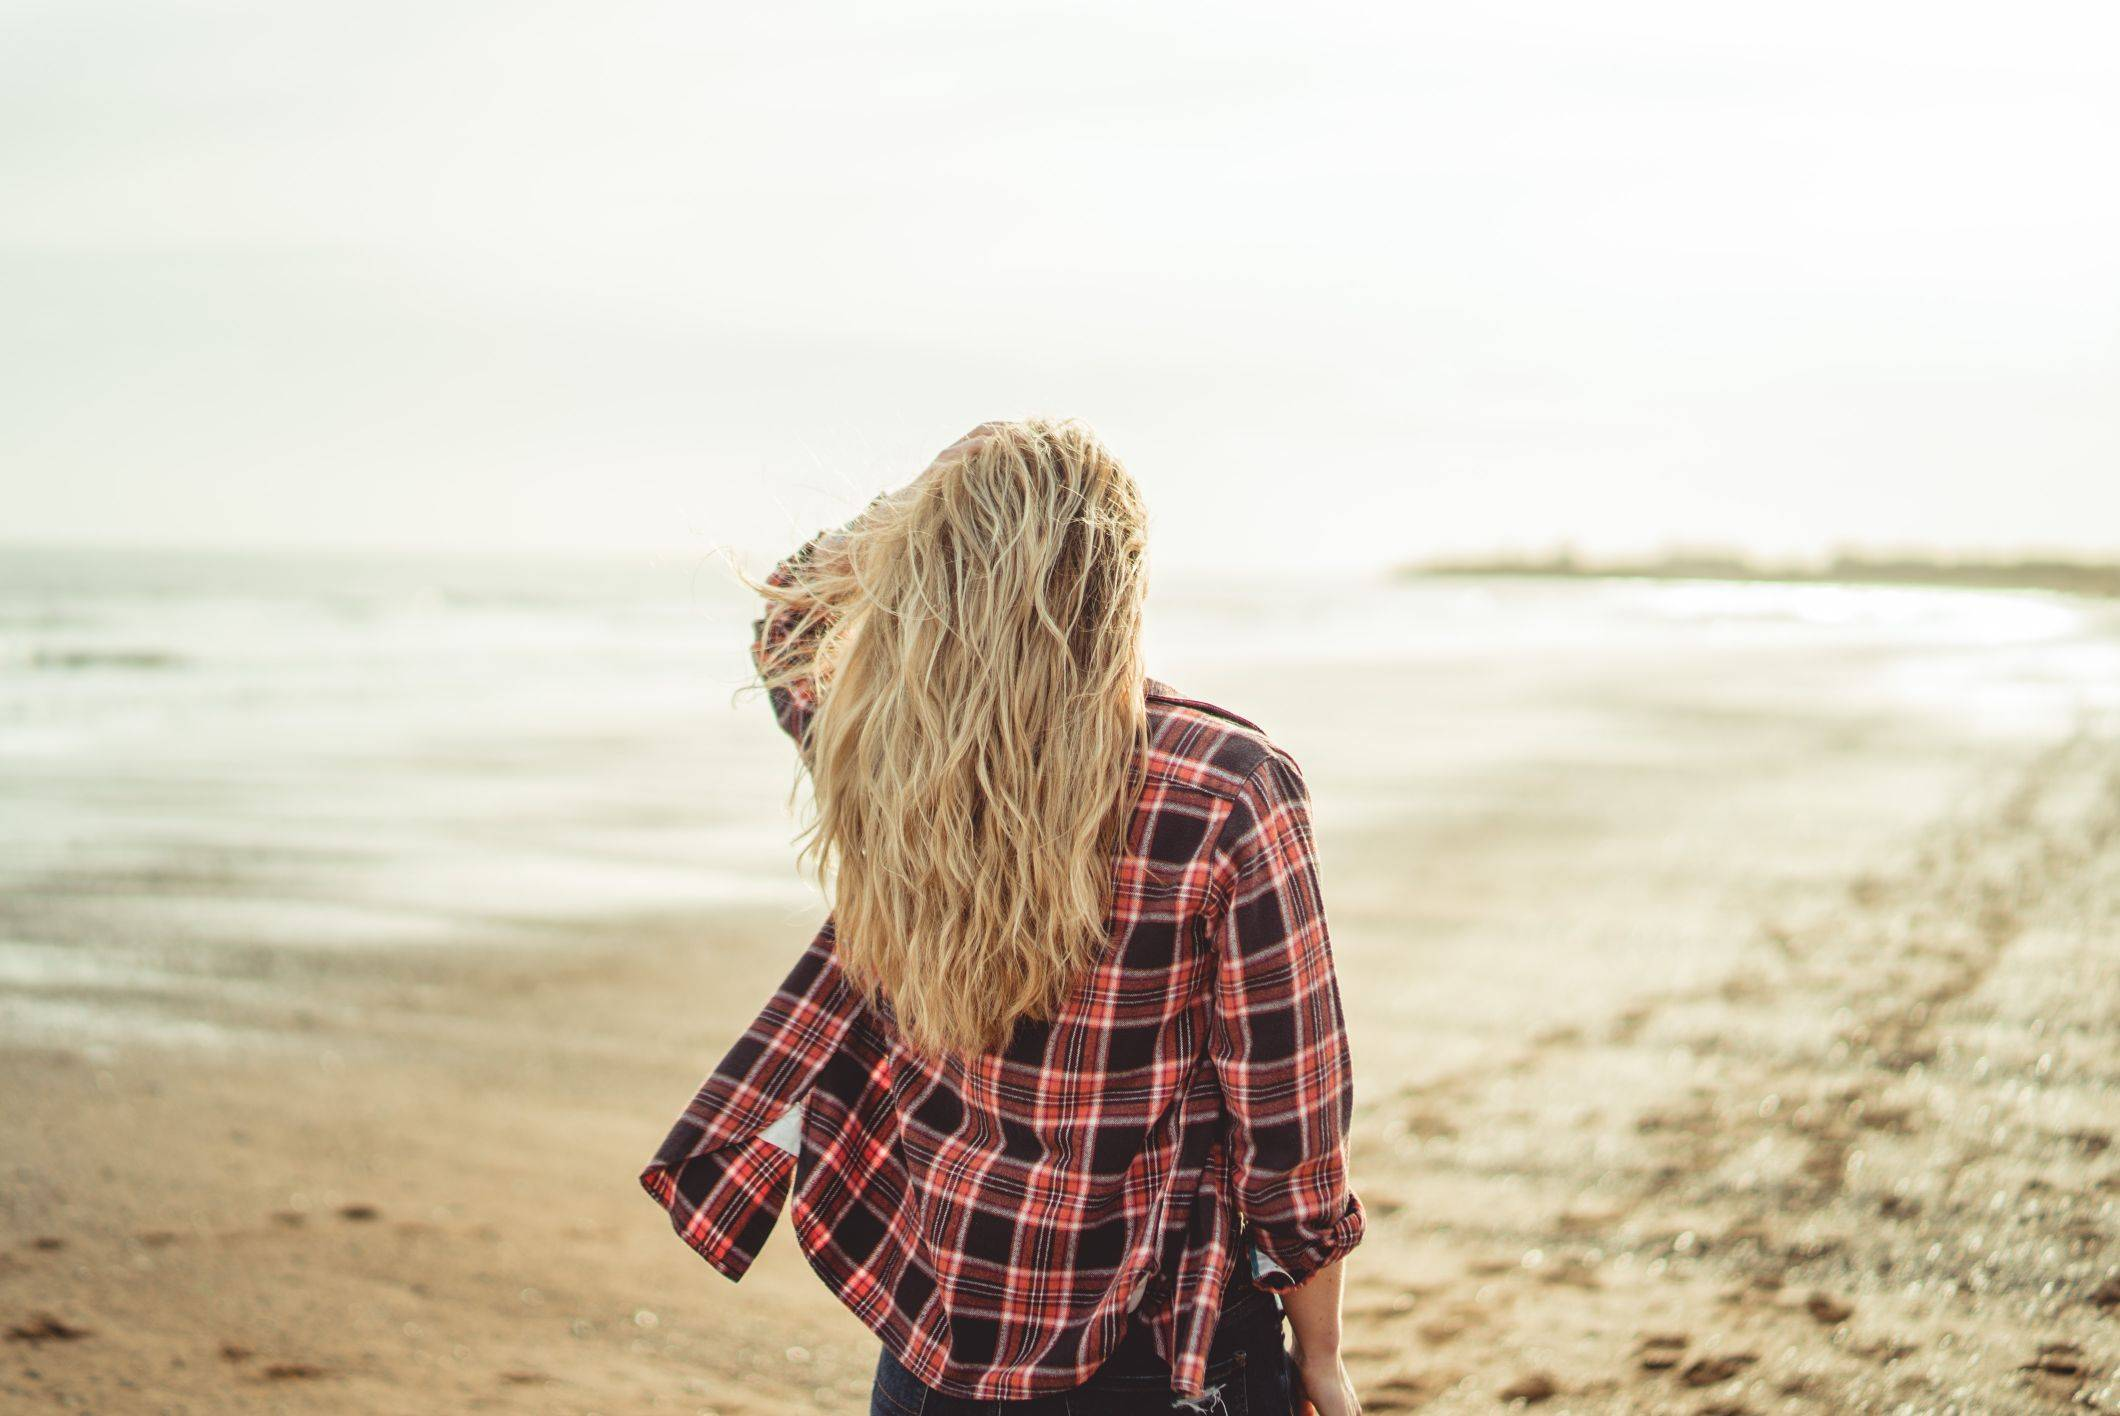 Image of back of wavy hair on beach